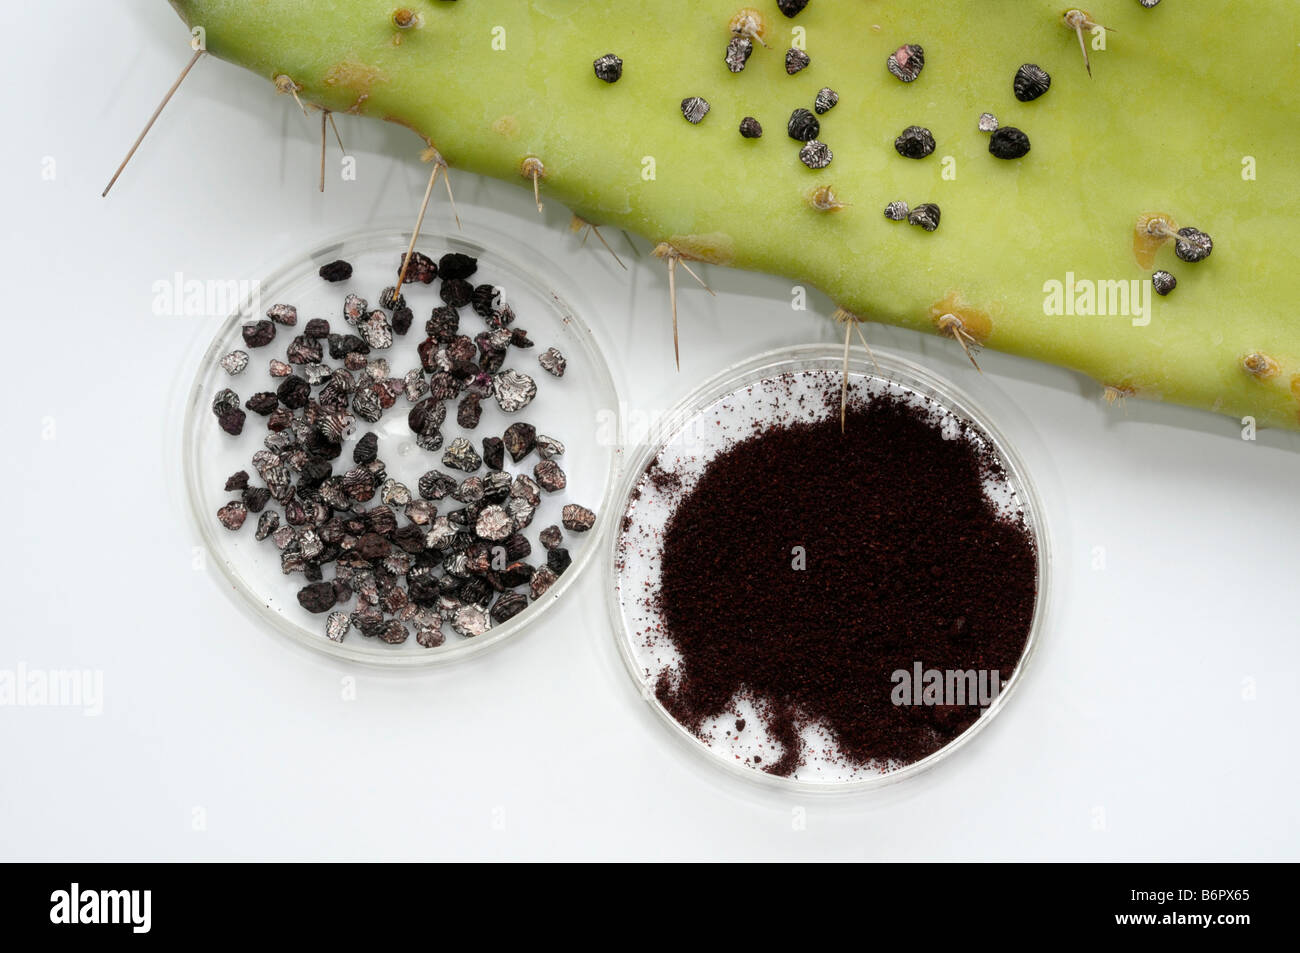 Cochineal insect (Dactylopius coccus). Dried females and powder for color production - Stock Image